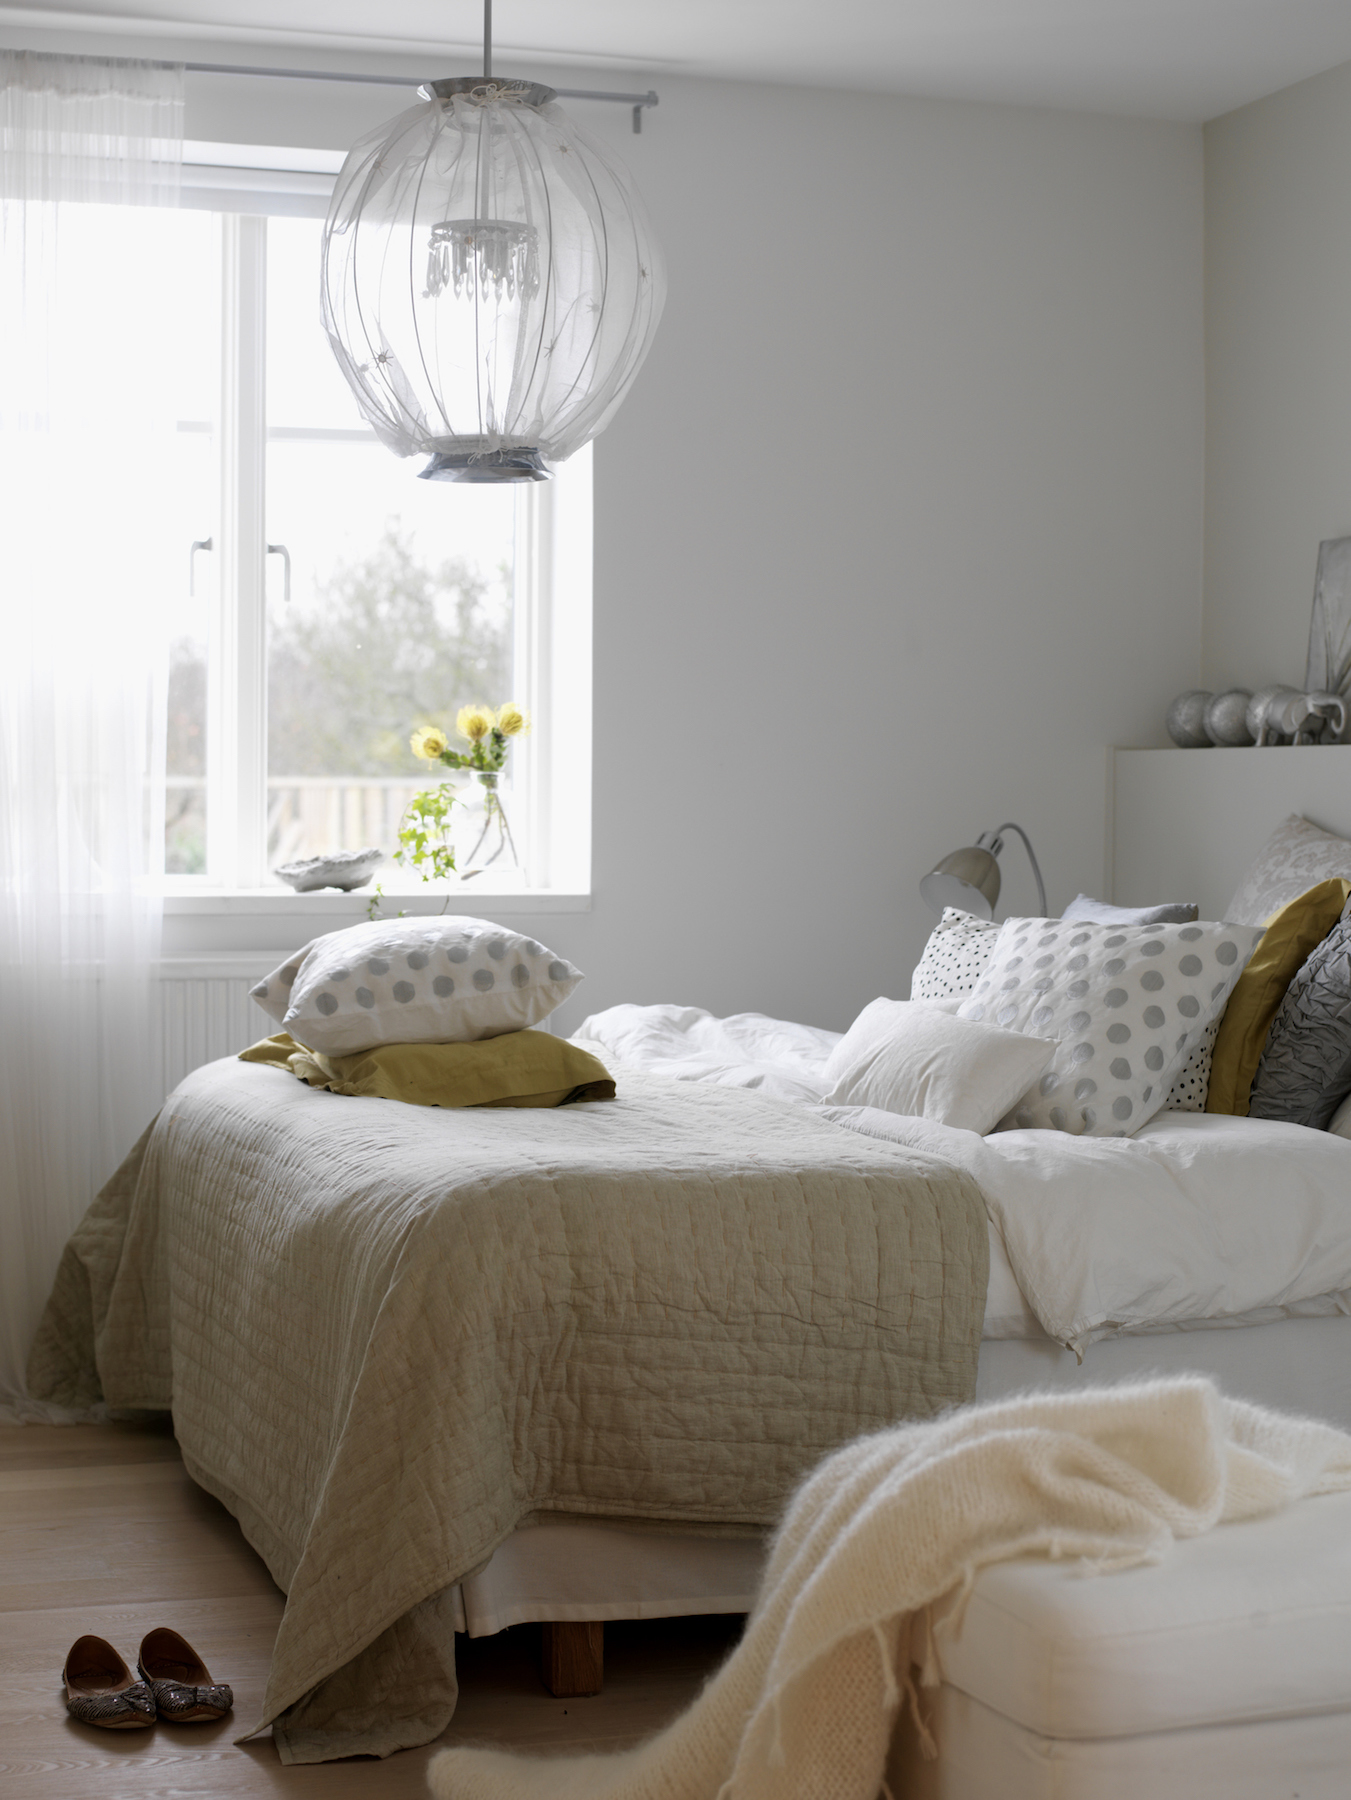 9 easy ways to cozy up your home real simple